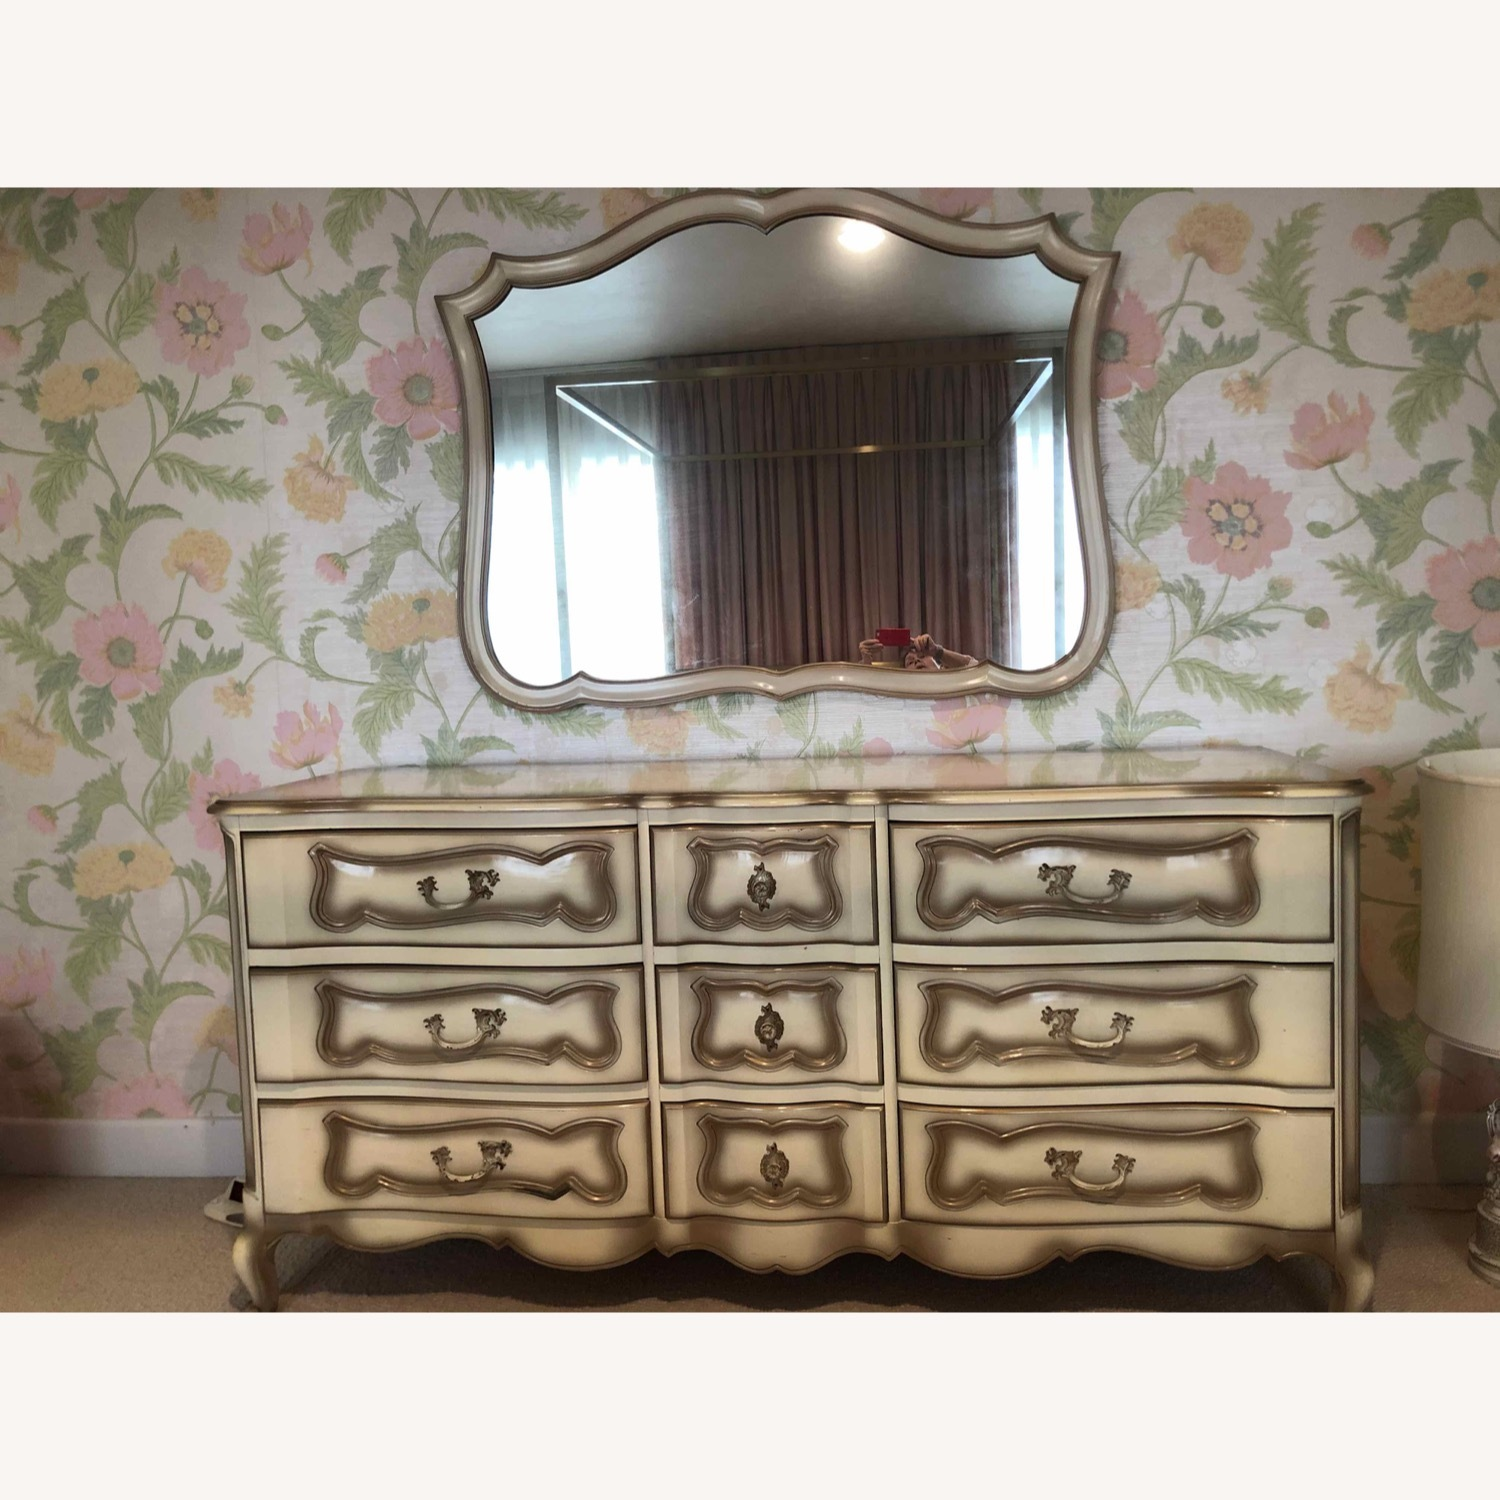 French Provincial Dresser and Matching Mirror - image-1